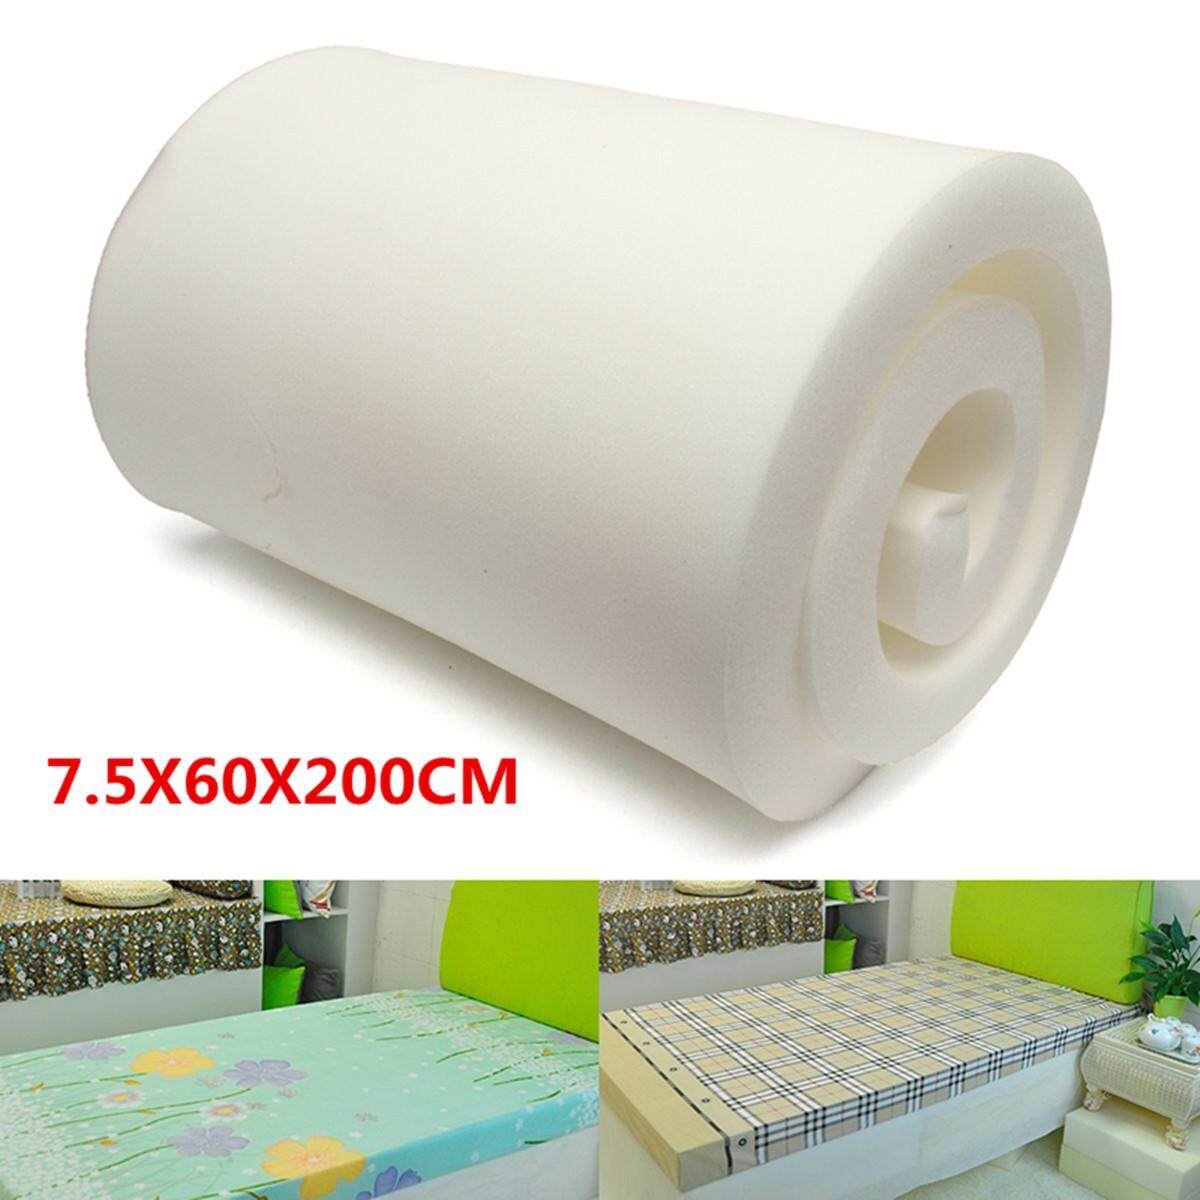 3x 24 X 79 White High Density Seat Rubber Cushion Foam Upholstery Replacement By Glimmer.